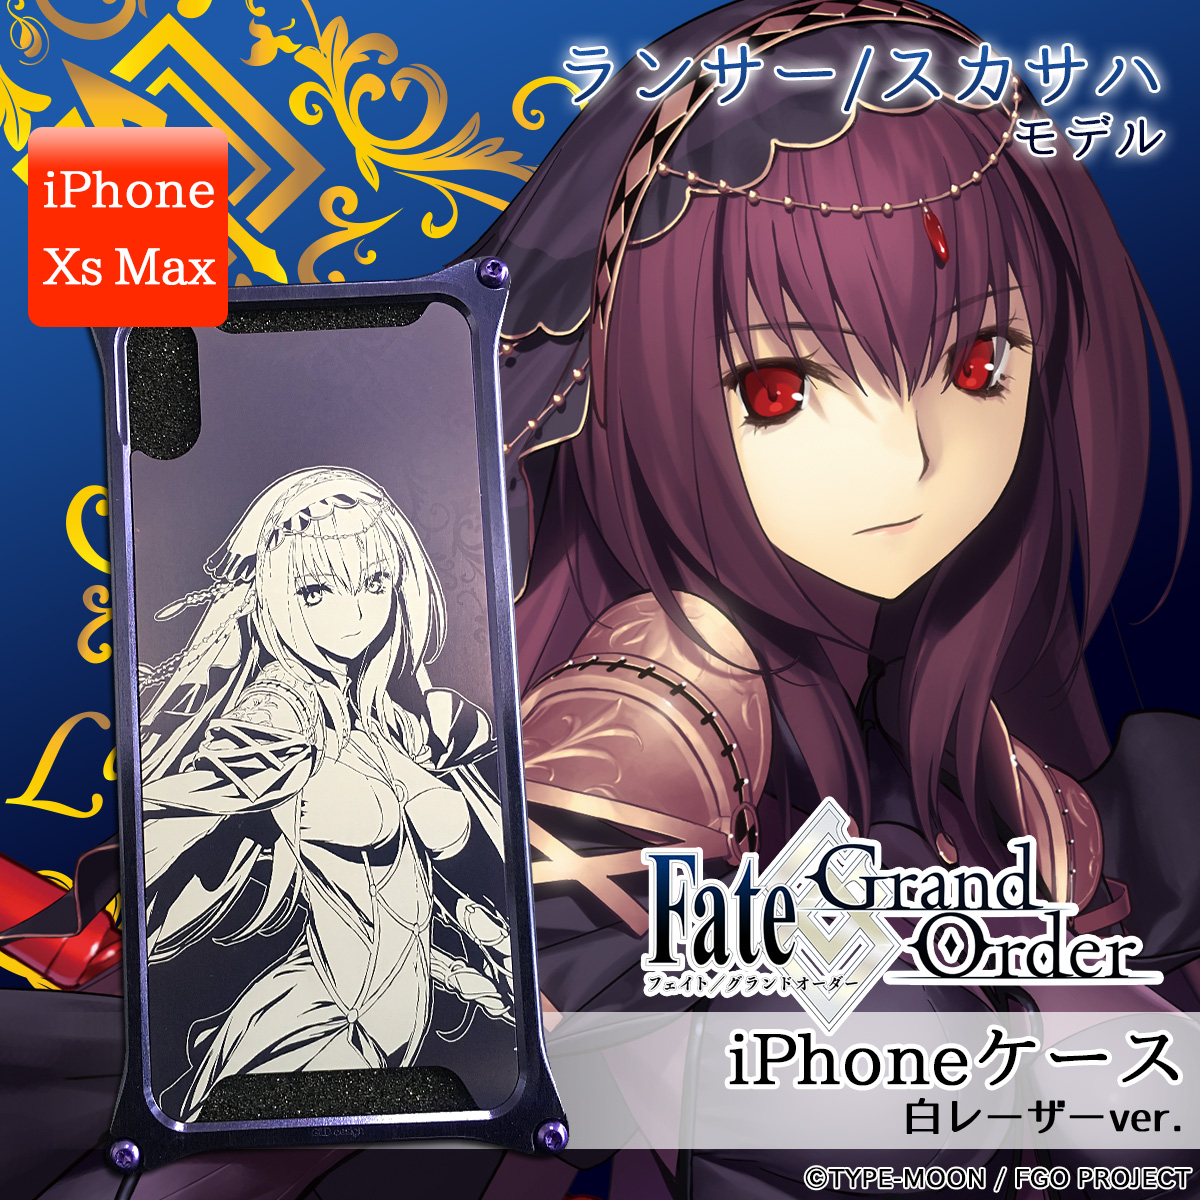 『Fate/Grand Order』×『GILD design』iPhoneXsMaxケース ランサー/スカサハ 白レーザーver.